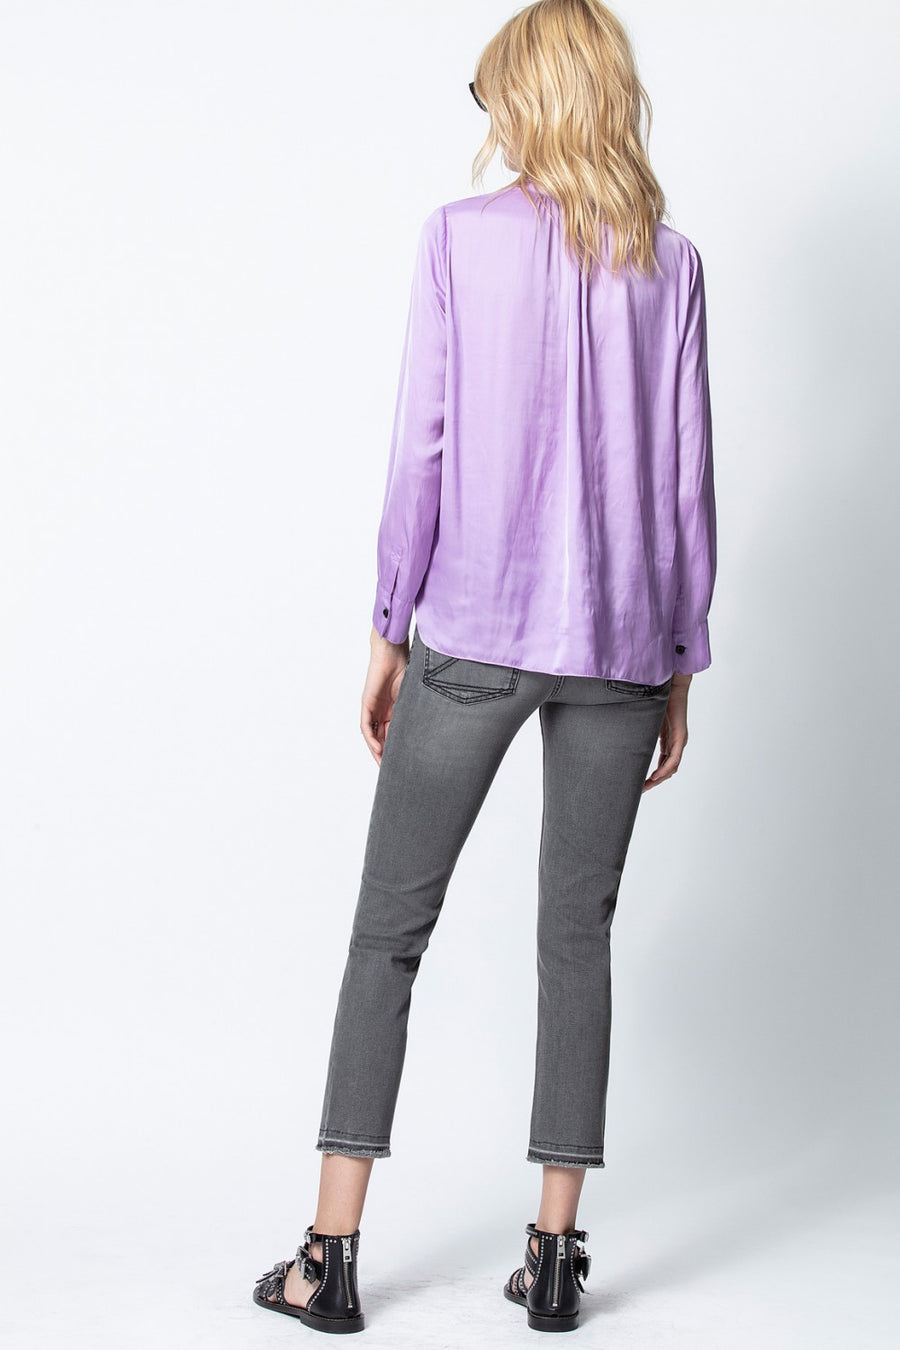 Zadig & Voltaire Tink Satin Top in Mauve